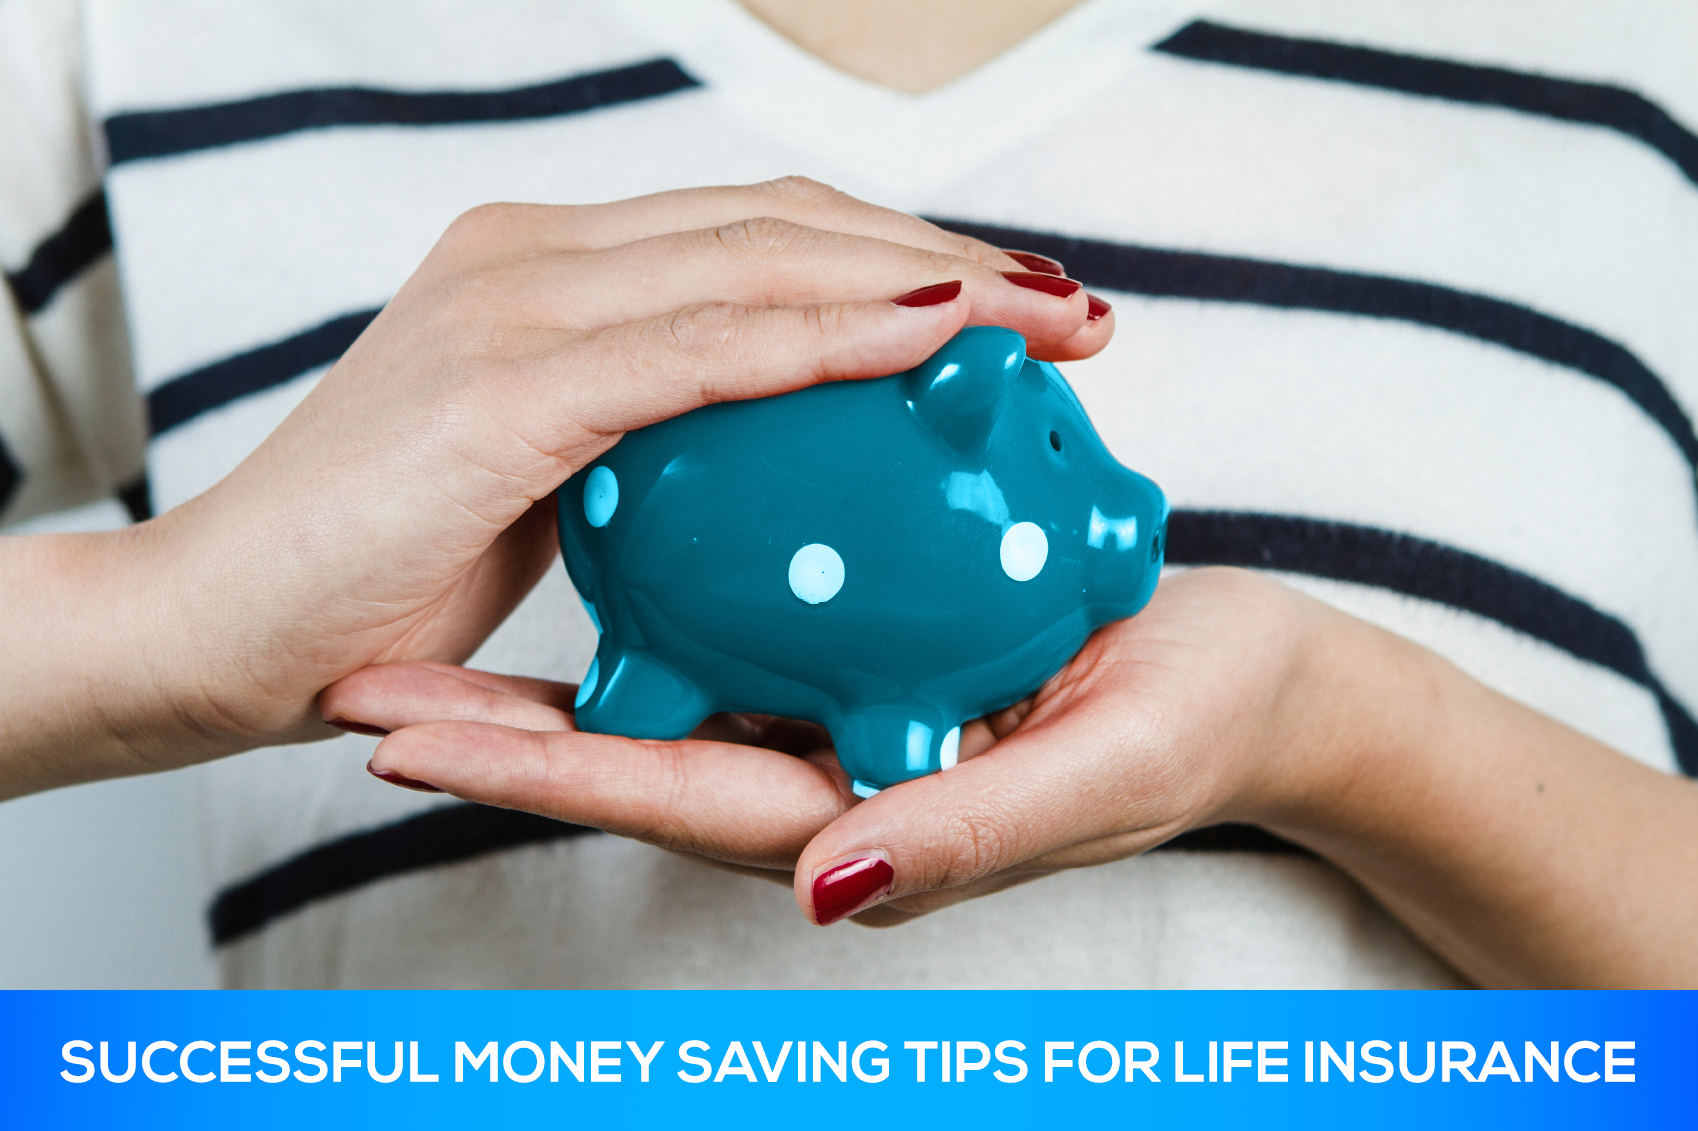 Some Tips To Save Money On Automobile Insurance